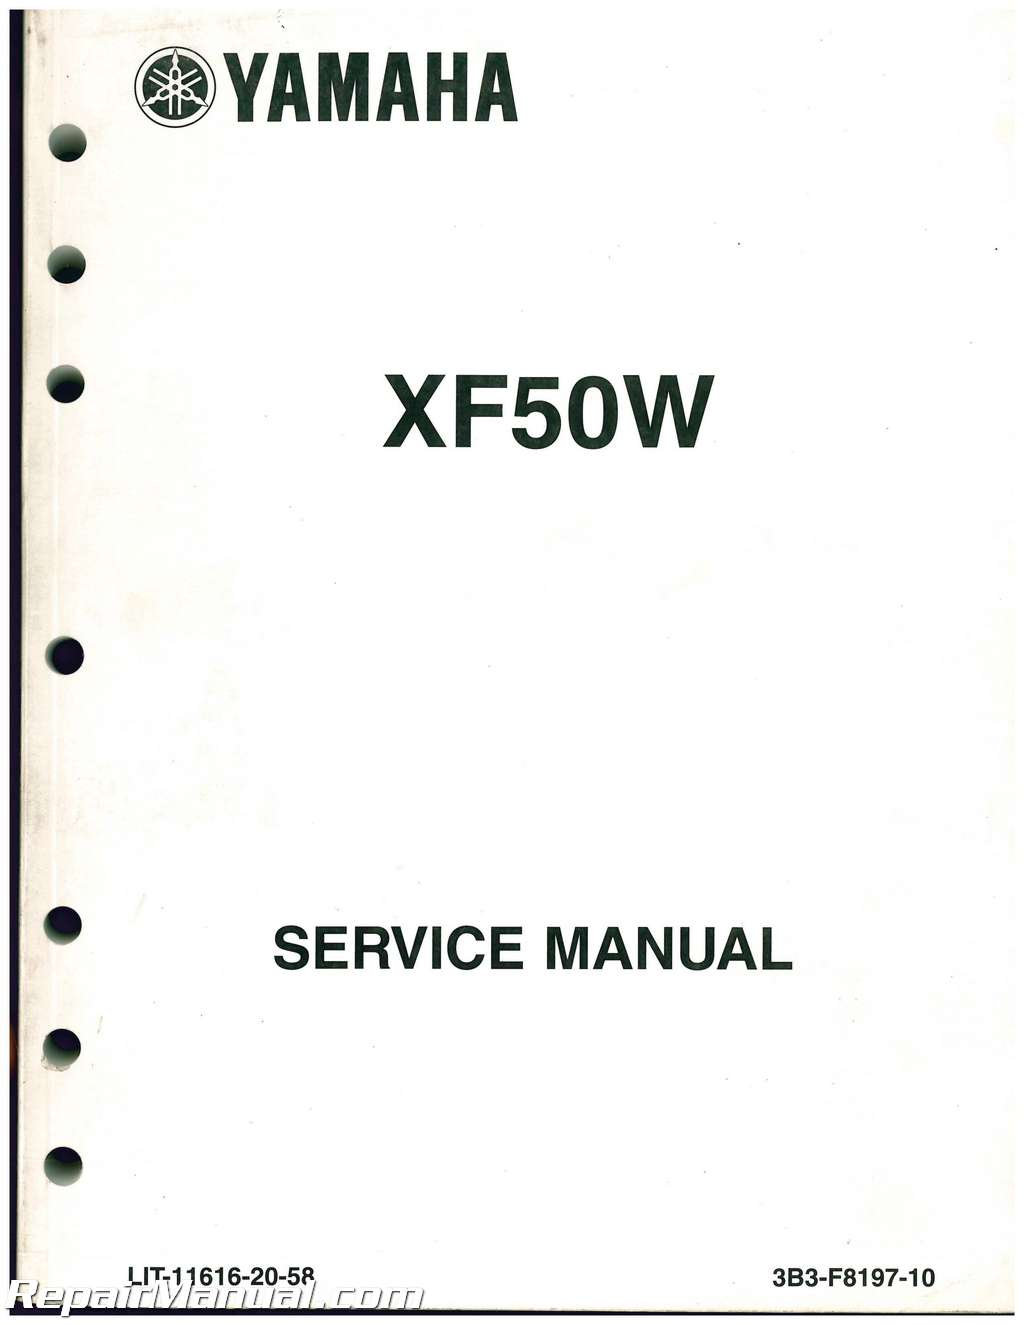 used 2007 2011 yamaha xf50 c3 scooter service manual ebay rh ebay com yamaha c3 scooter owners manual Yamaha Service Dealers